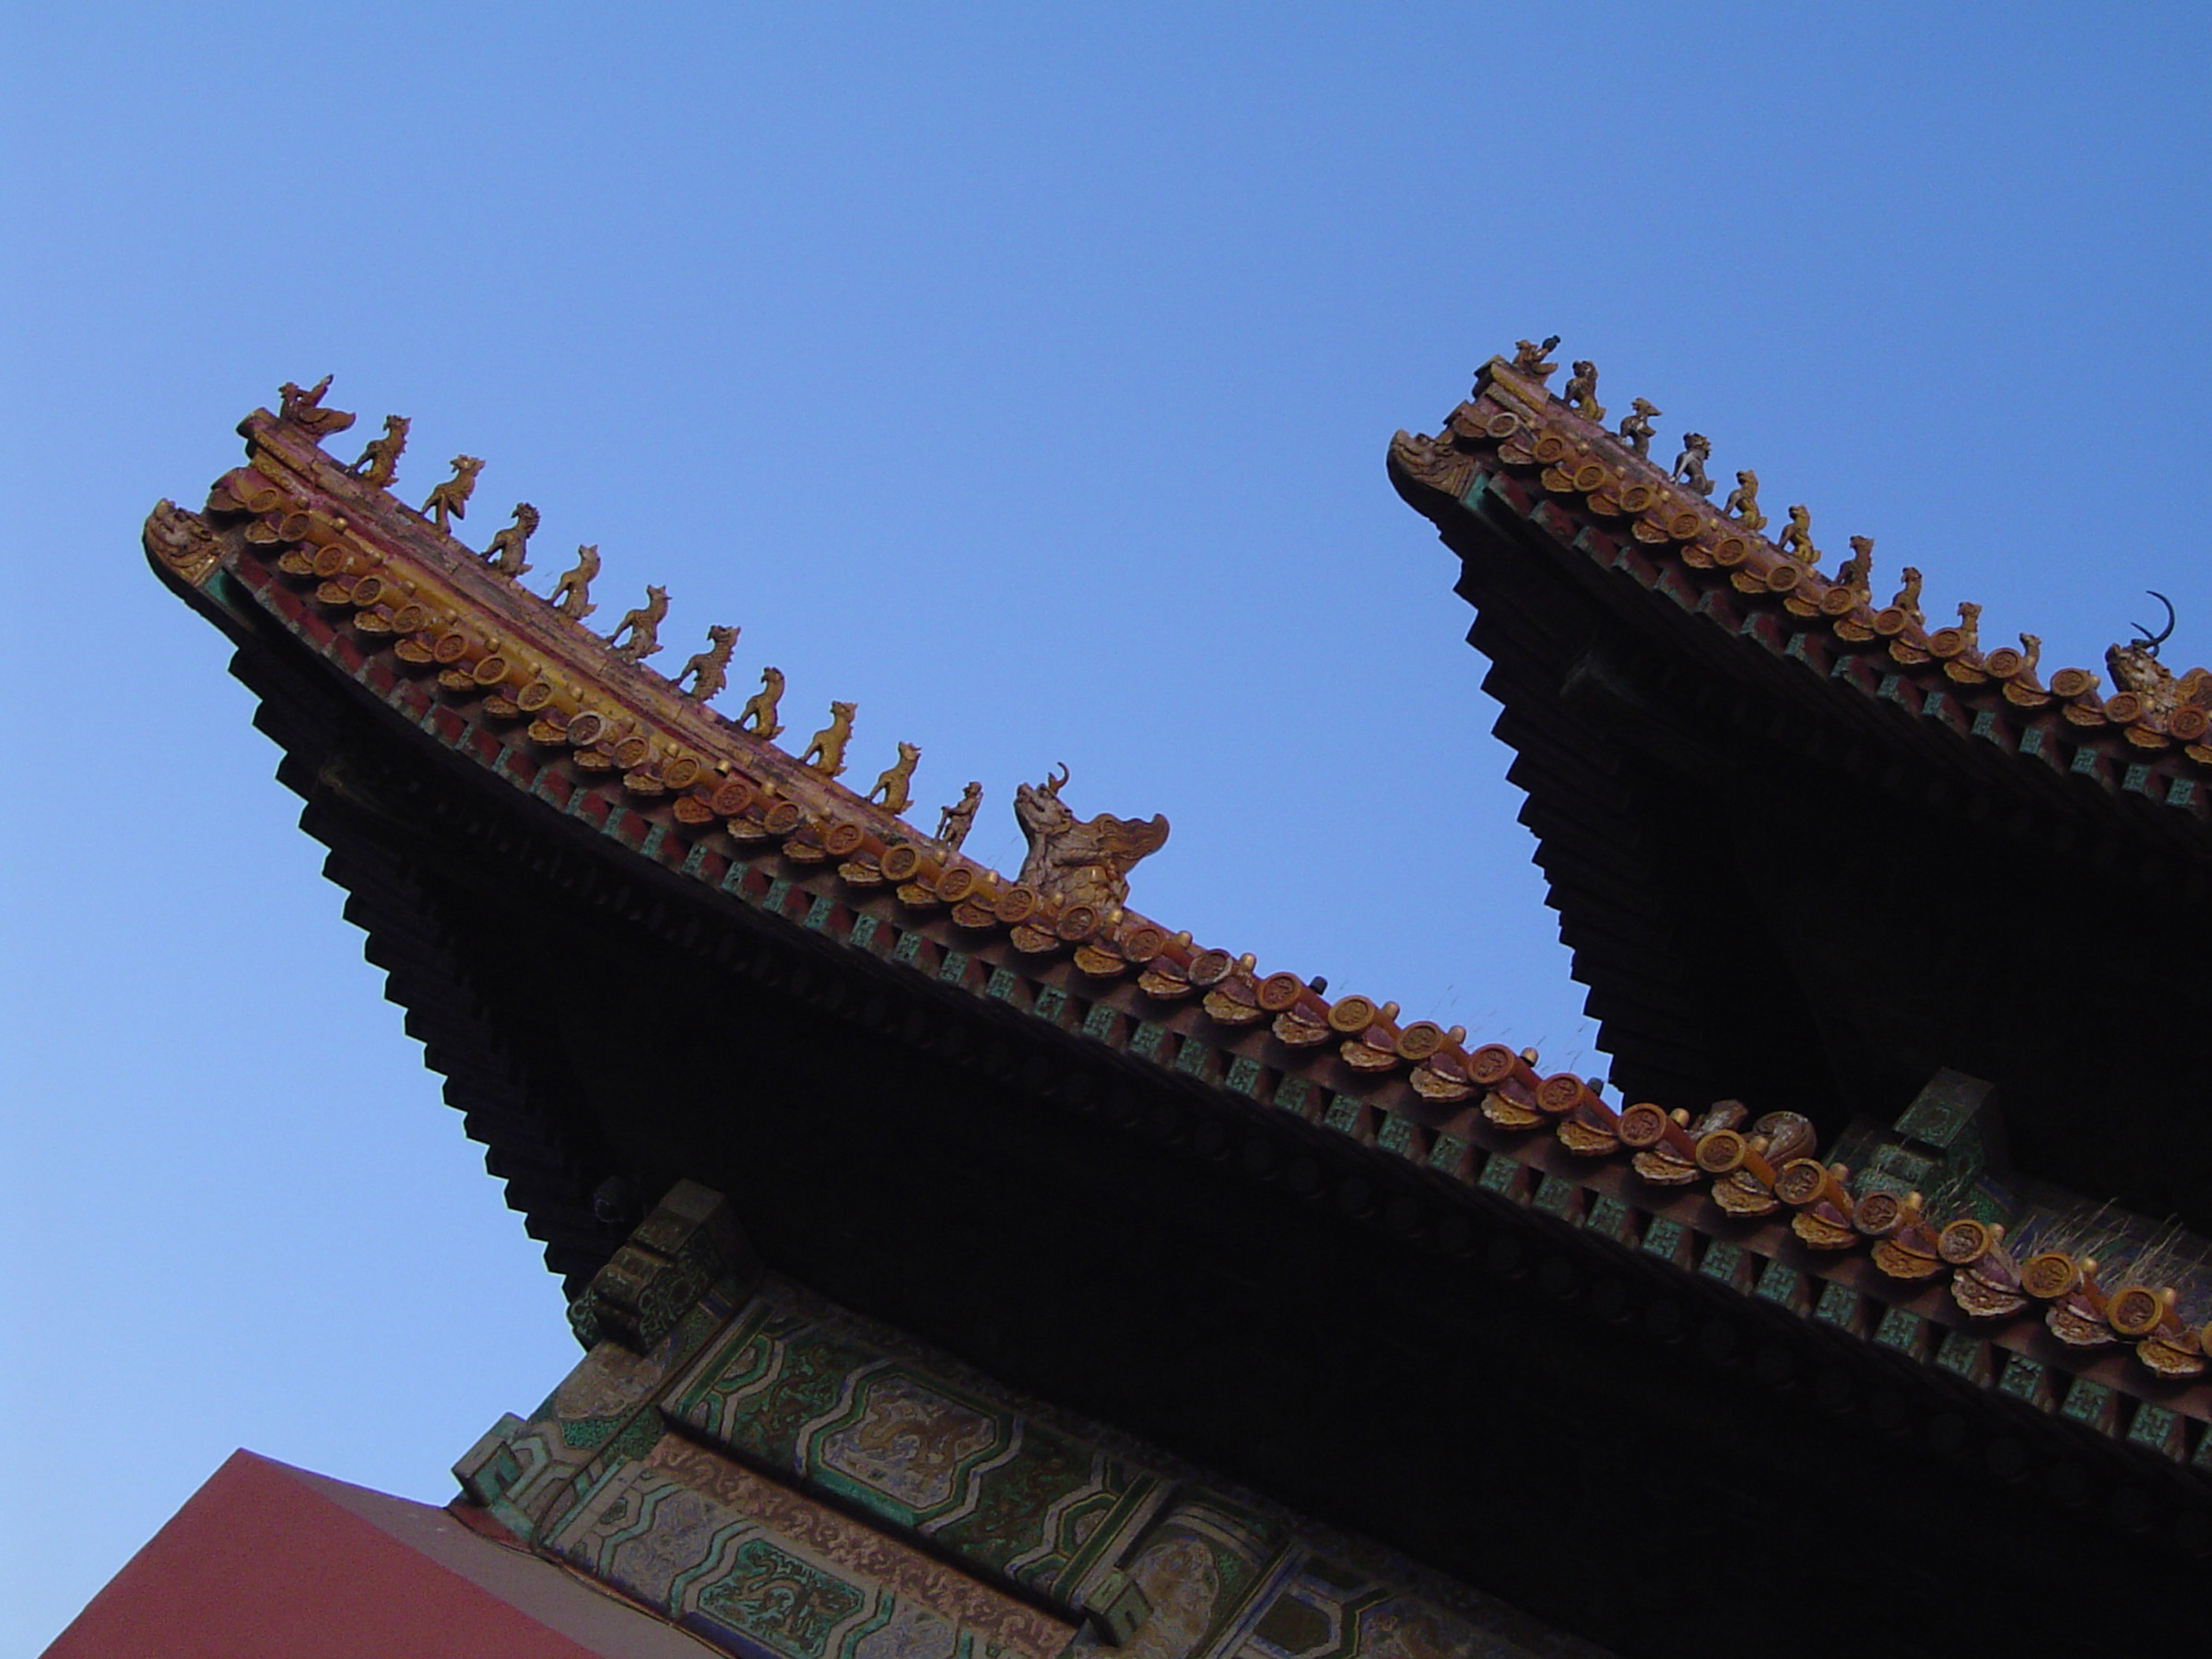 Artistic Details of Famous Vintage The Forbidden City Palace in Beijing, China on Light Blue Sky Background.